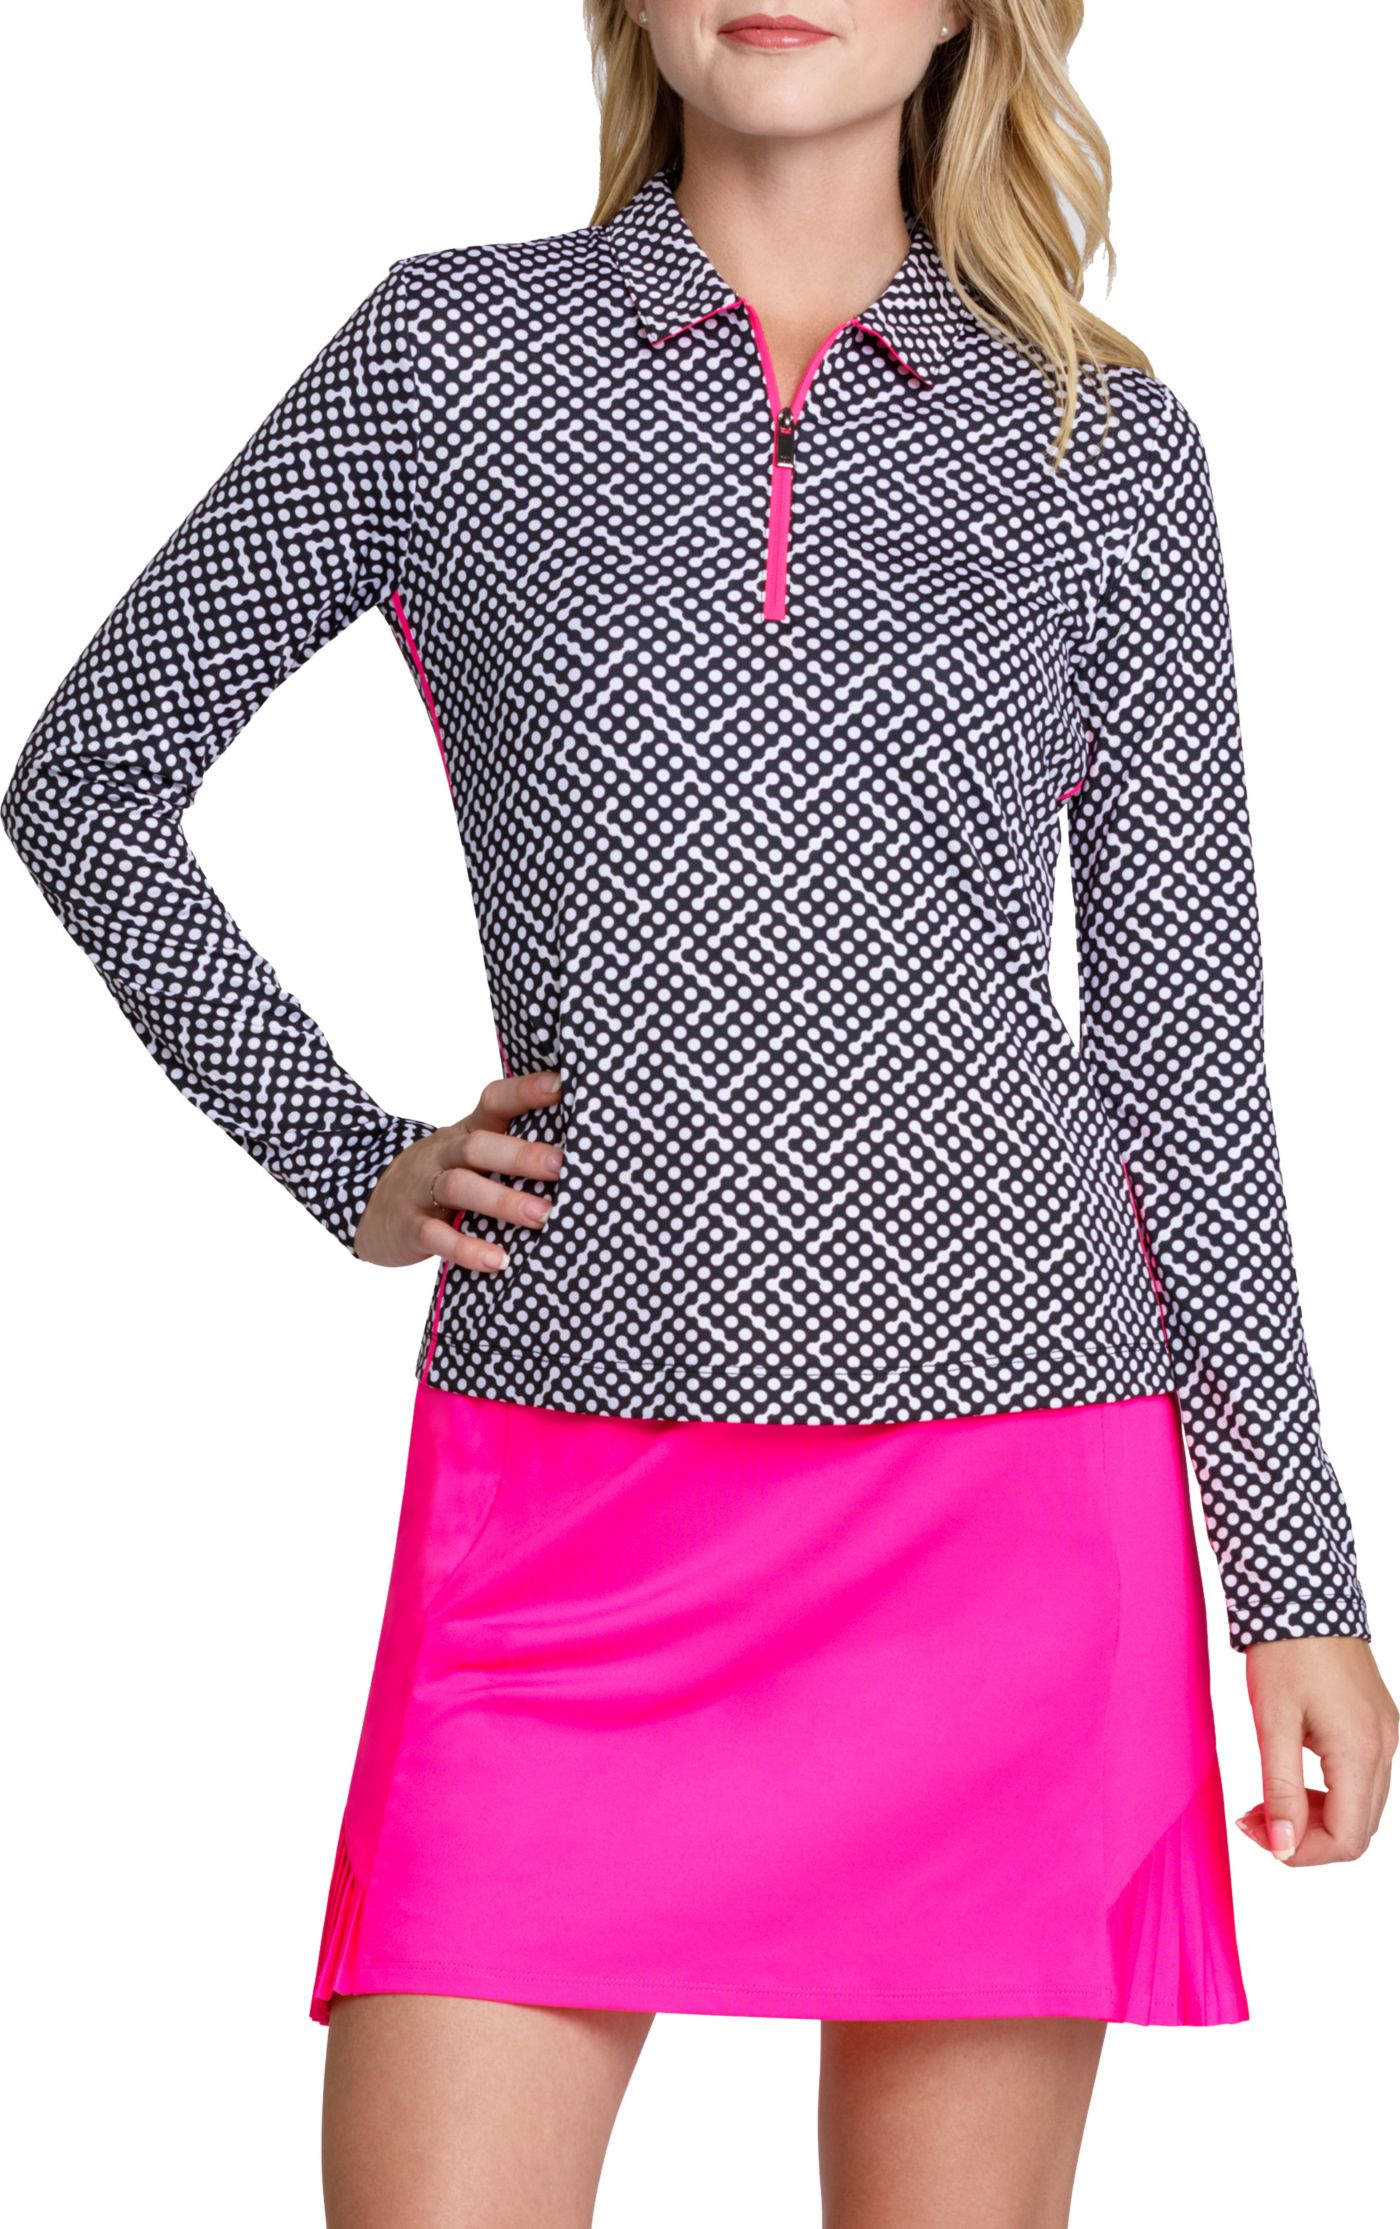 Tail Women's Polka Dot ¼ Zip Golf Top